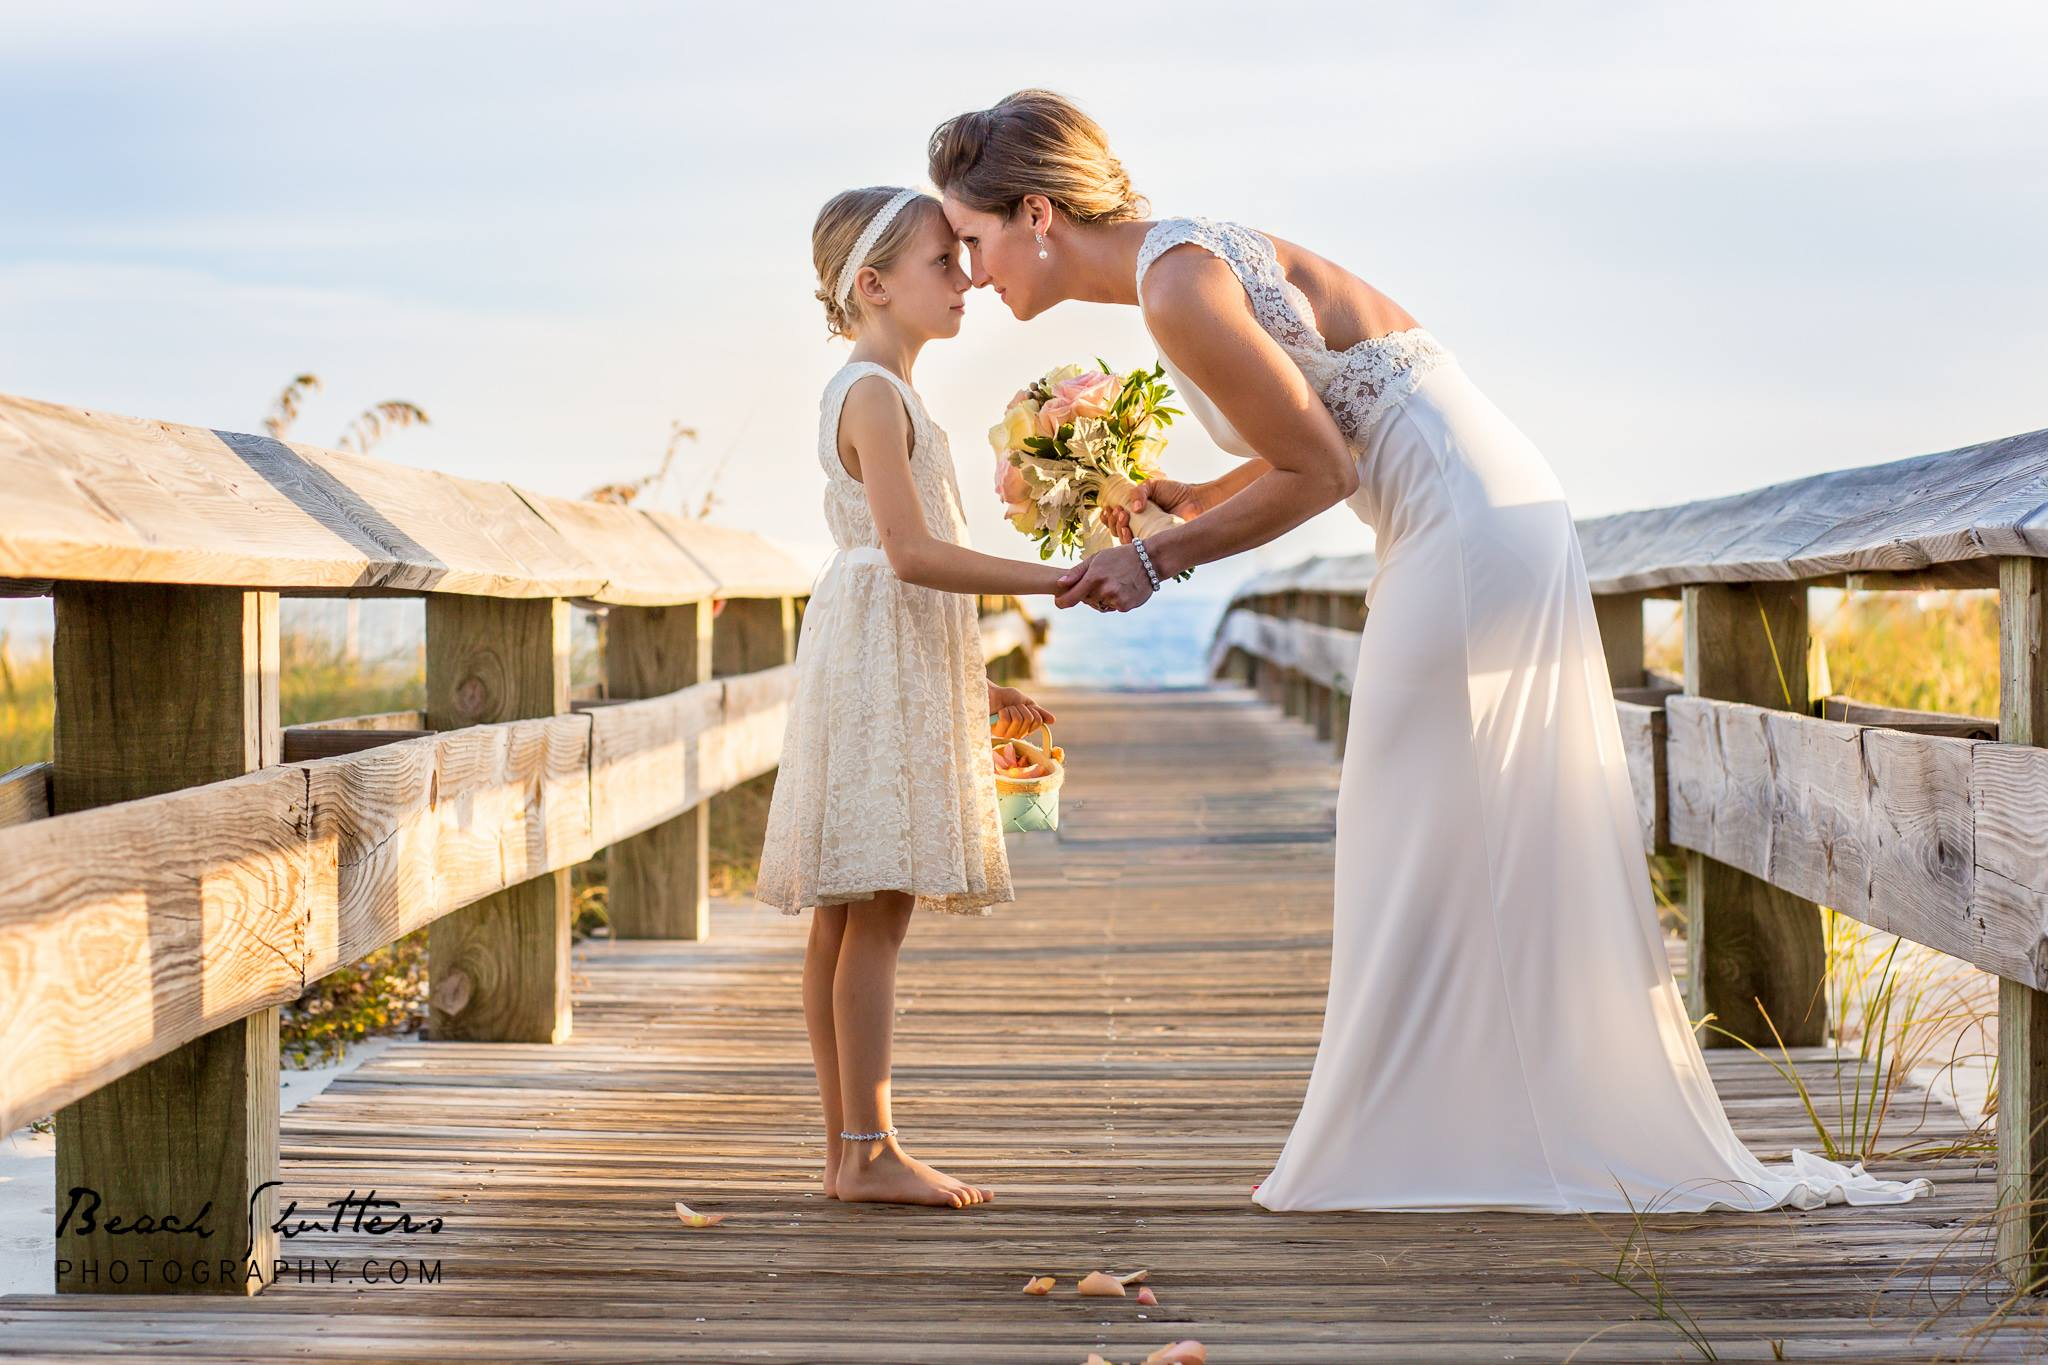 Photography in Orange Beach at the boardwalk of condo wedding